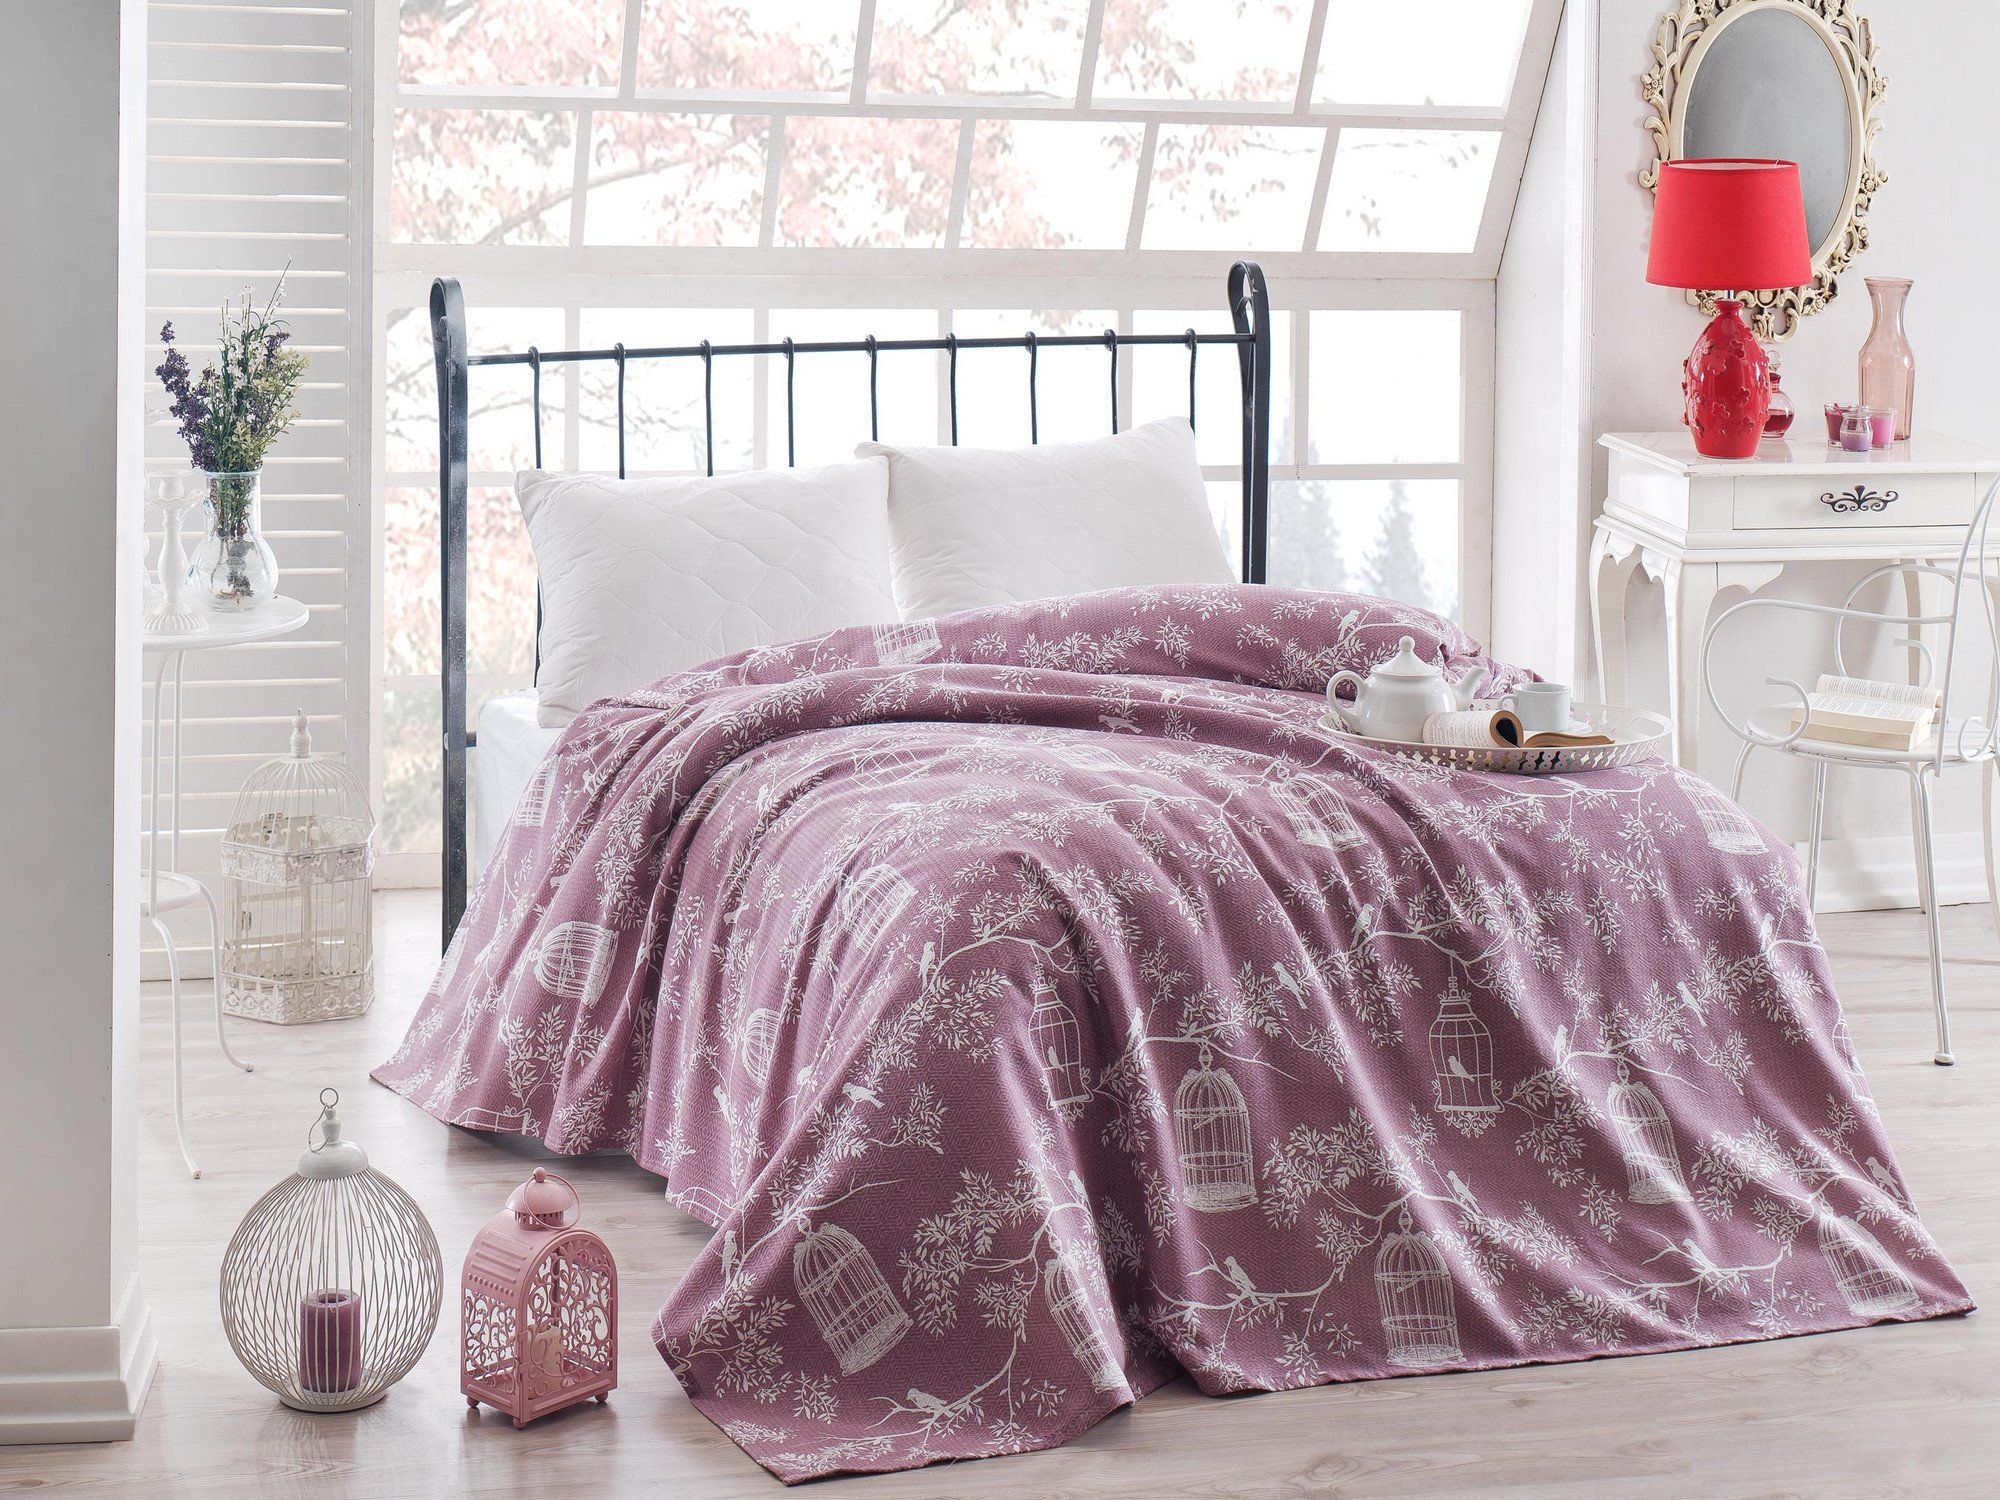 LaModaHome Luxury Soft Colored Twin and Single Bedroom Bedding 100% Cotton Single Coverlet (Pique) Thin Coverlet Summer/Bird Cage Animal Tree Plant Flower Nature Purple Background